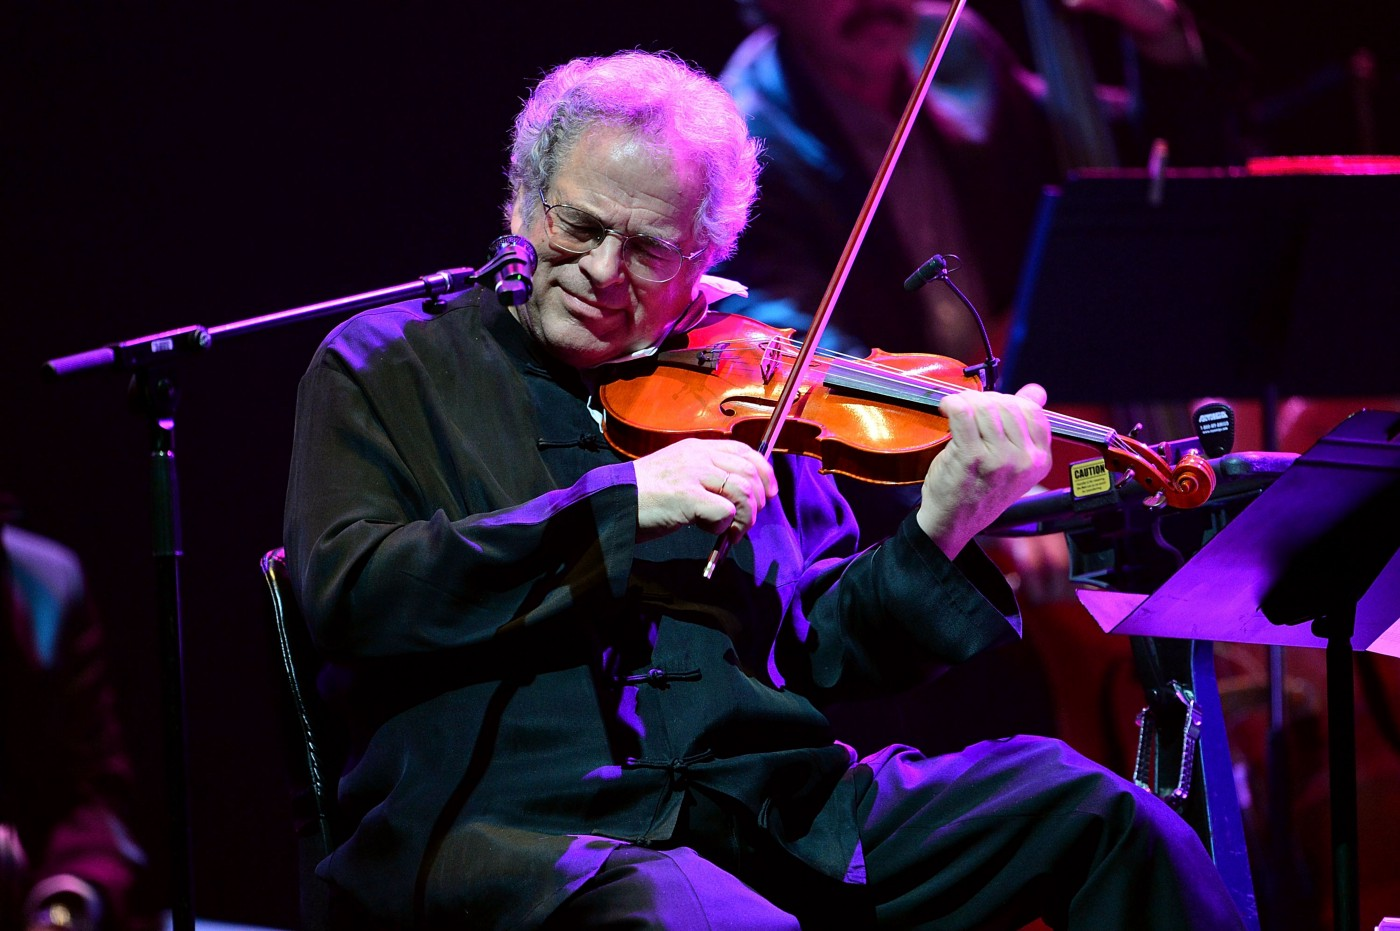 Itzhak Perlman performs at the Barclays Center on February 28, 2013 in New York City.